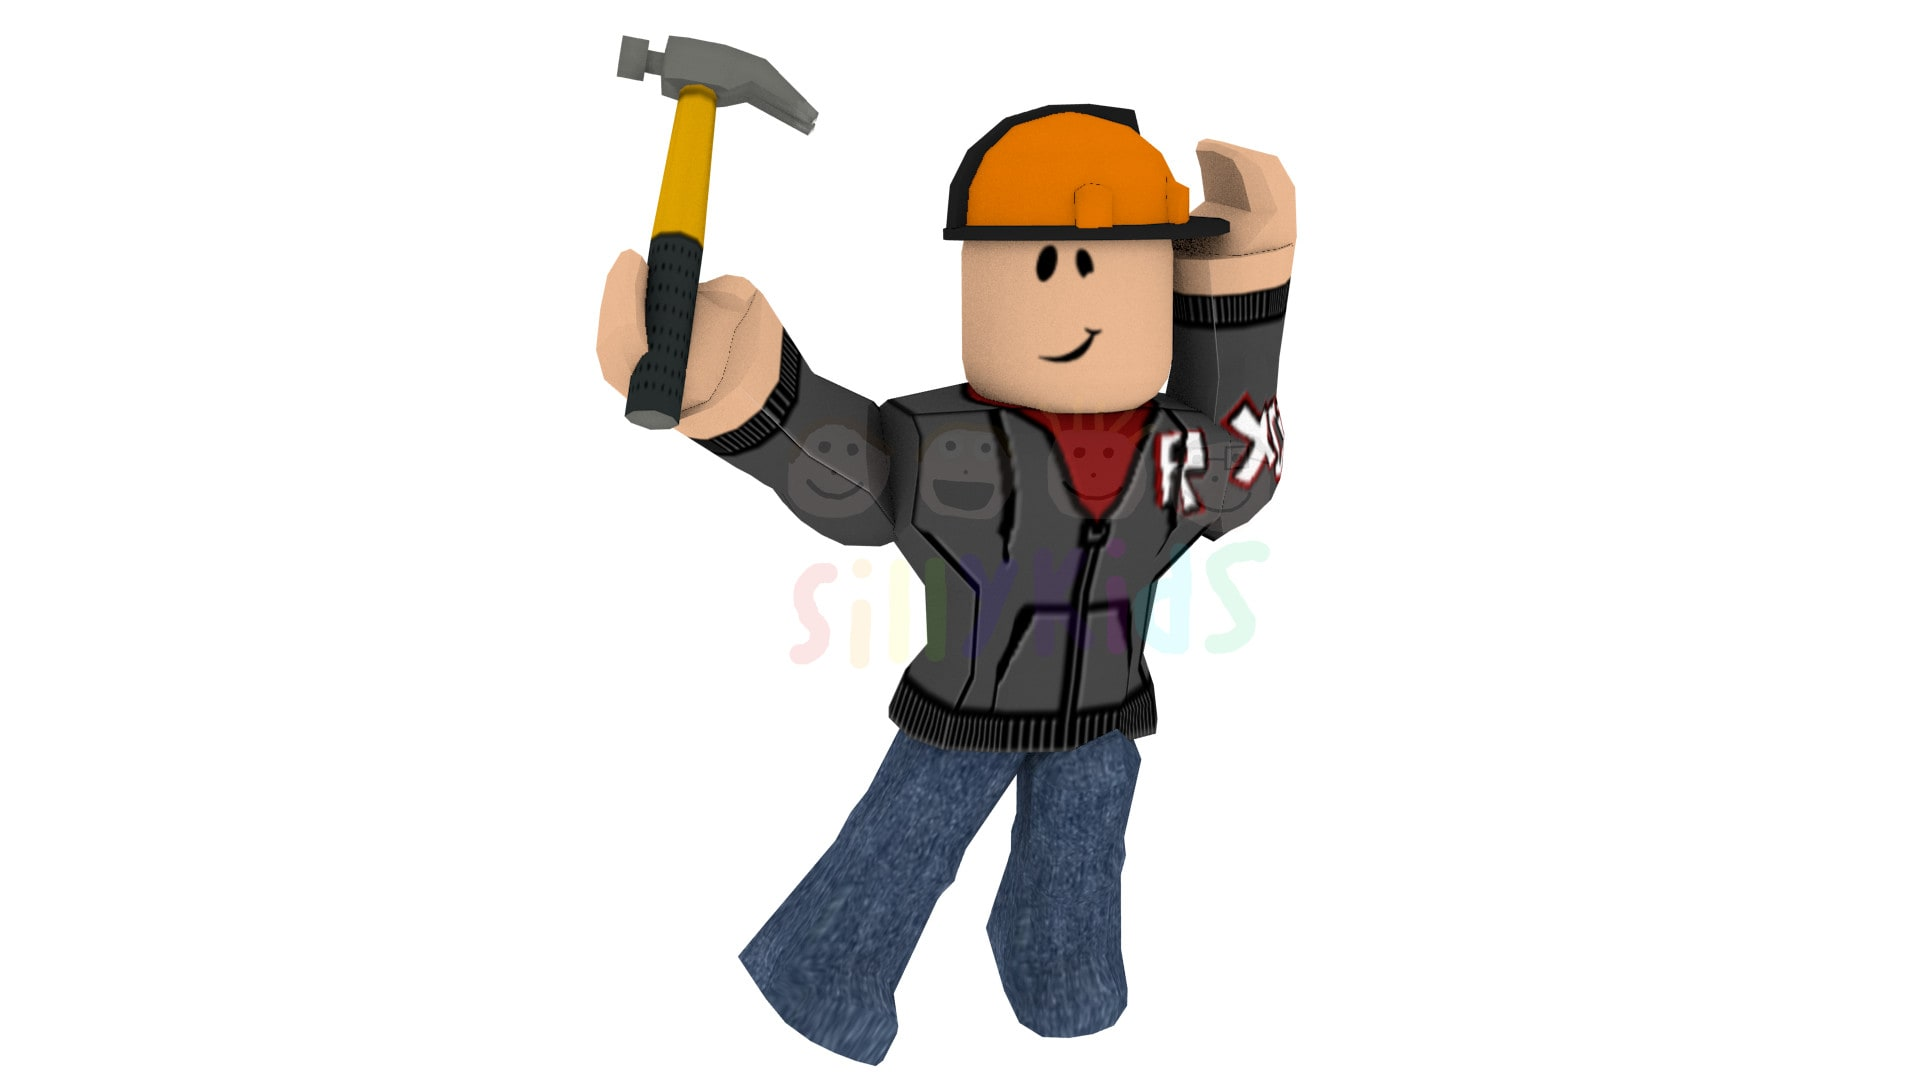 Roblox Accsesories Make You A Roblox Character Render With Accessories By Realsillykids